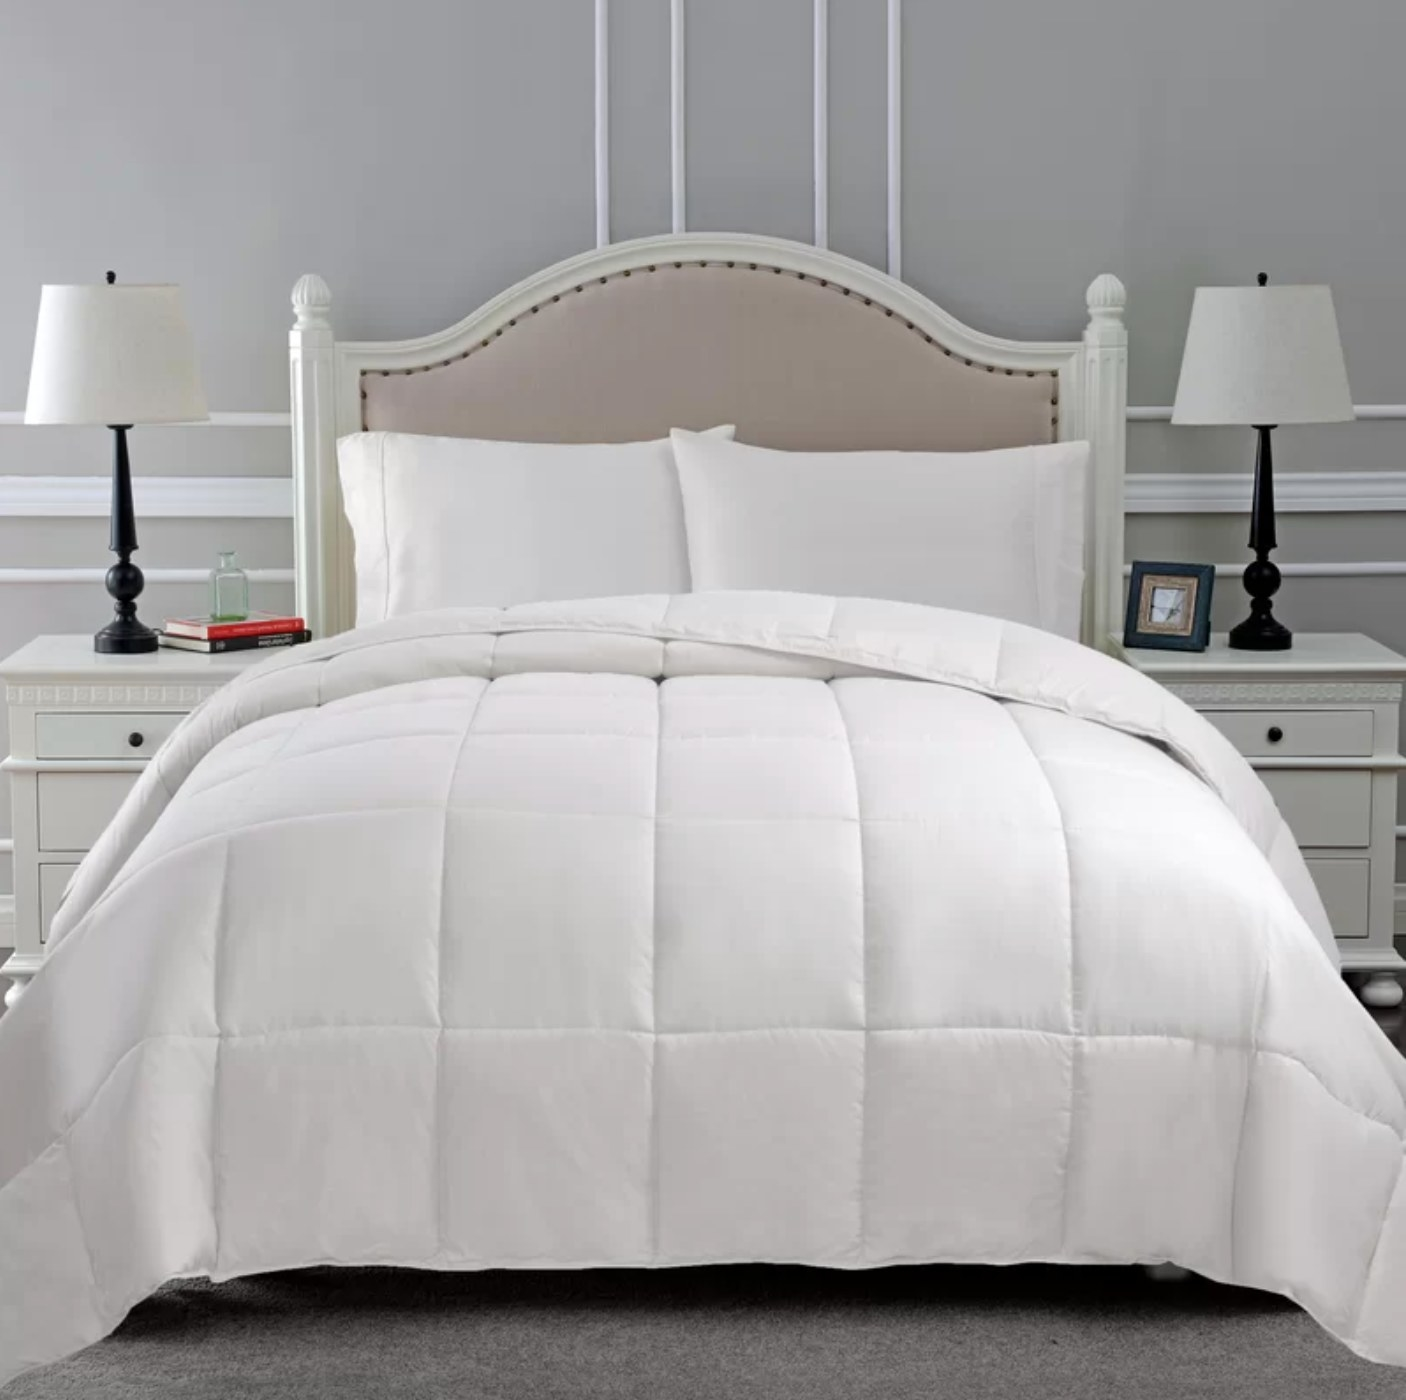 The down comforter in white